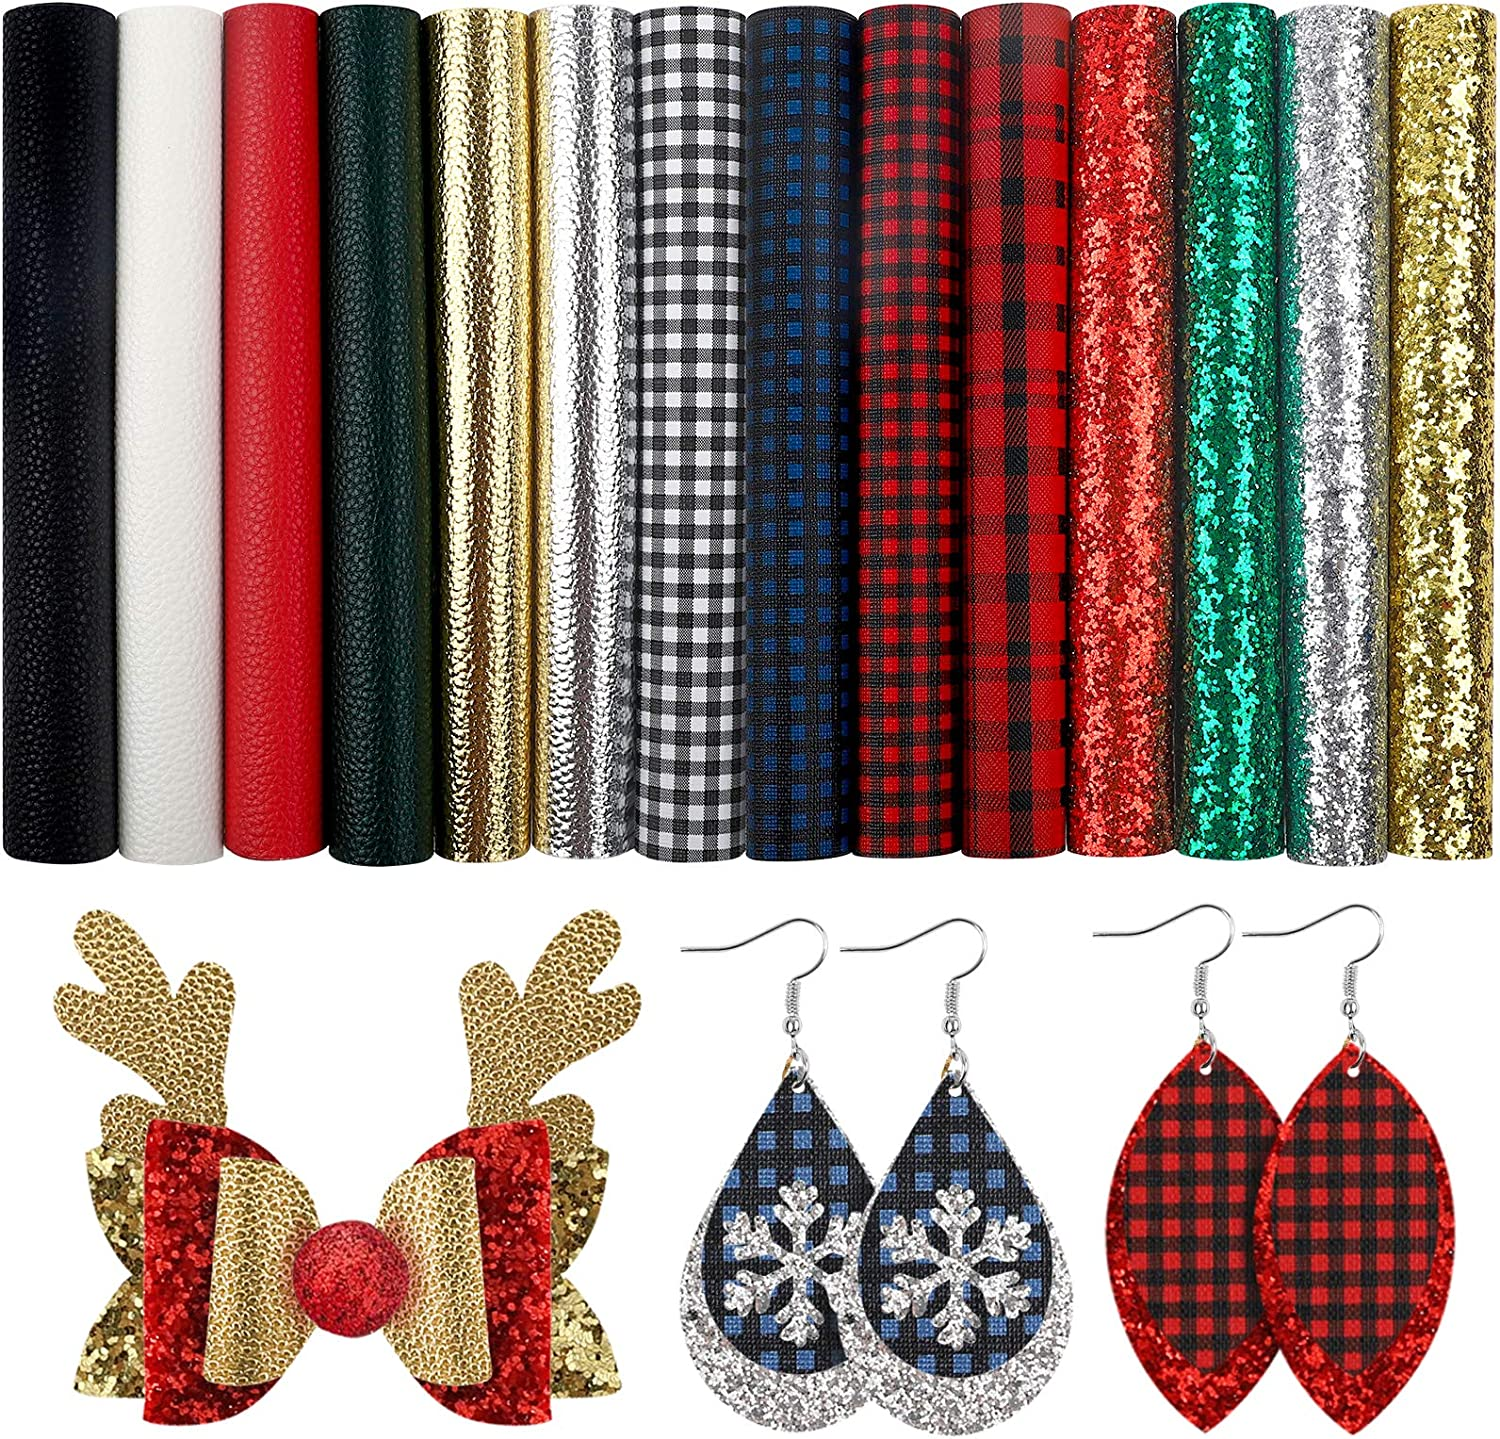 6.3 Inches x 8.3 Inches and DIY Sewing Craft Bows Wallet Jewelry SGHUO 14pcs Christmas Faux Leather Sheets Embossed Fabric Sheets for Making Earrings